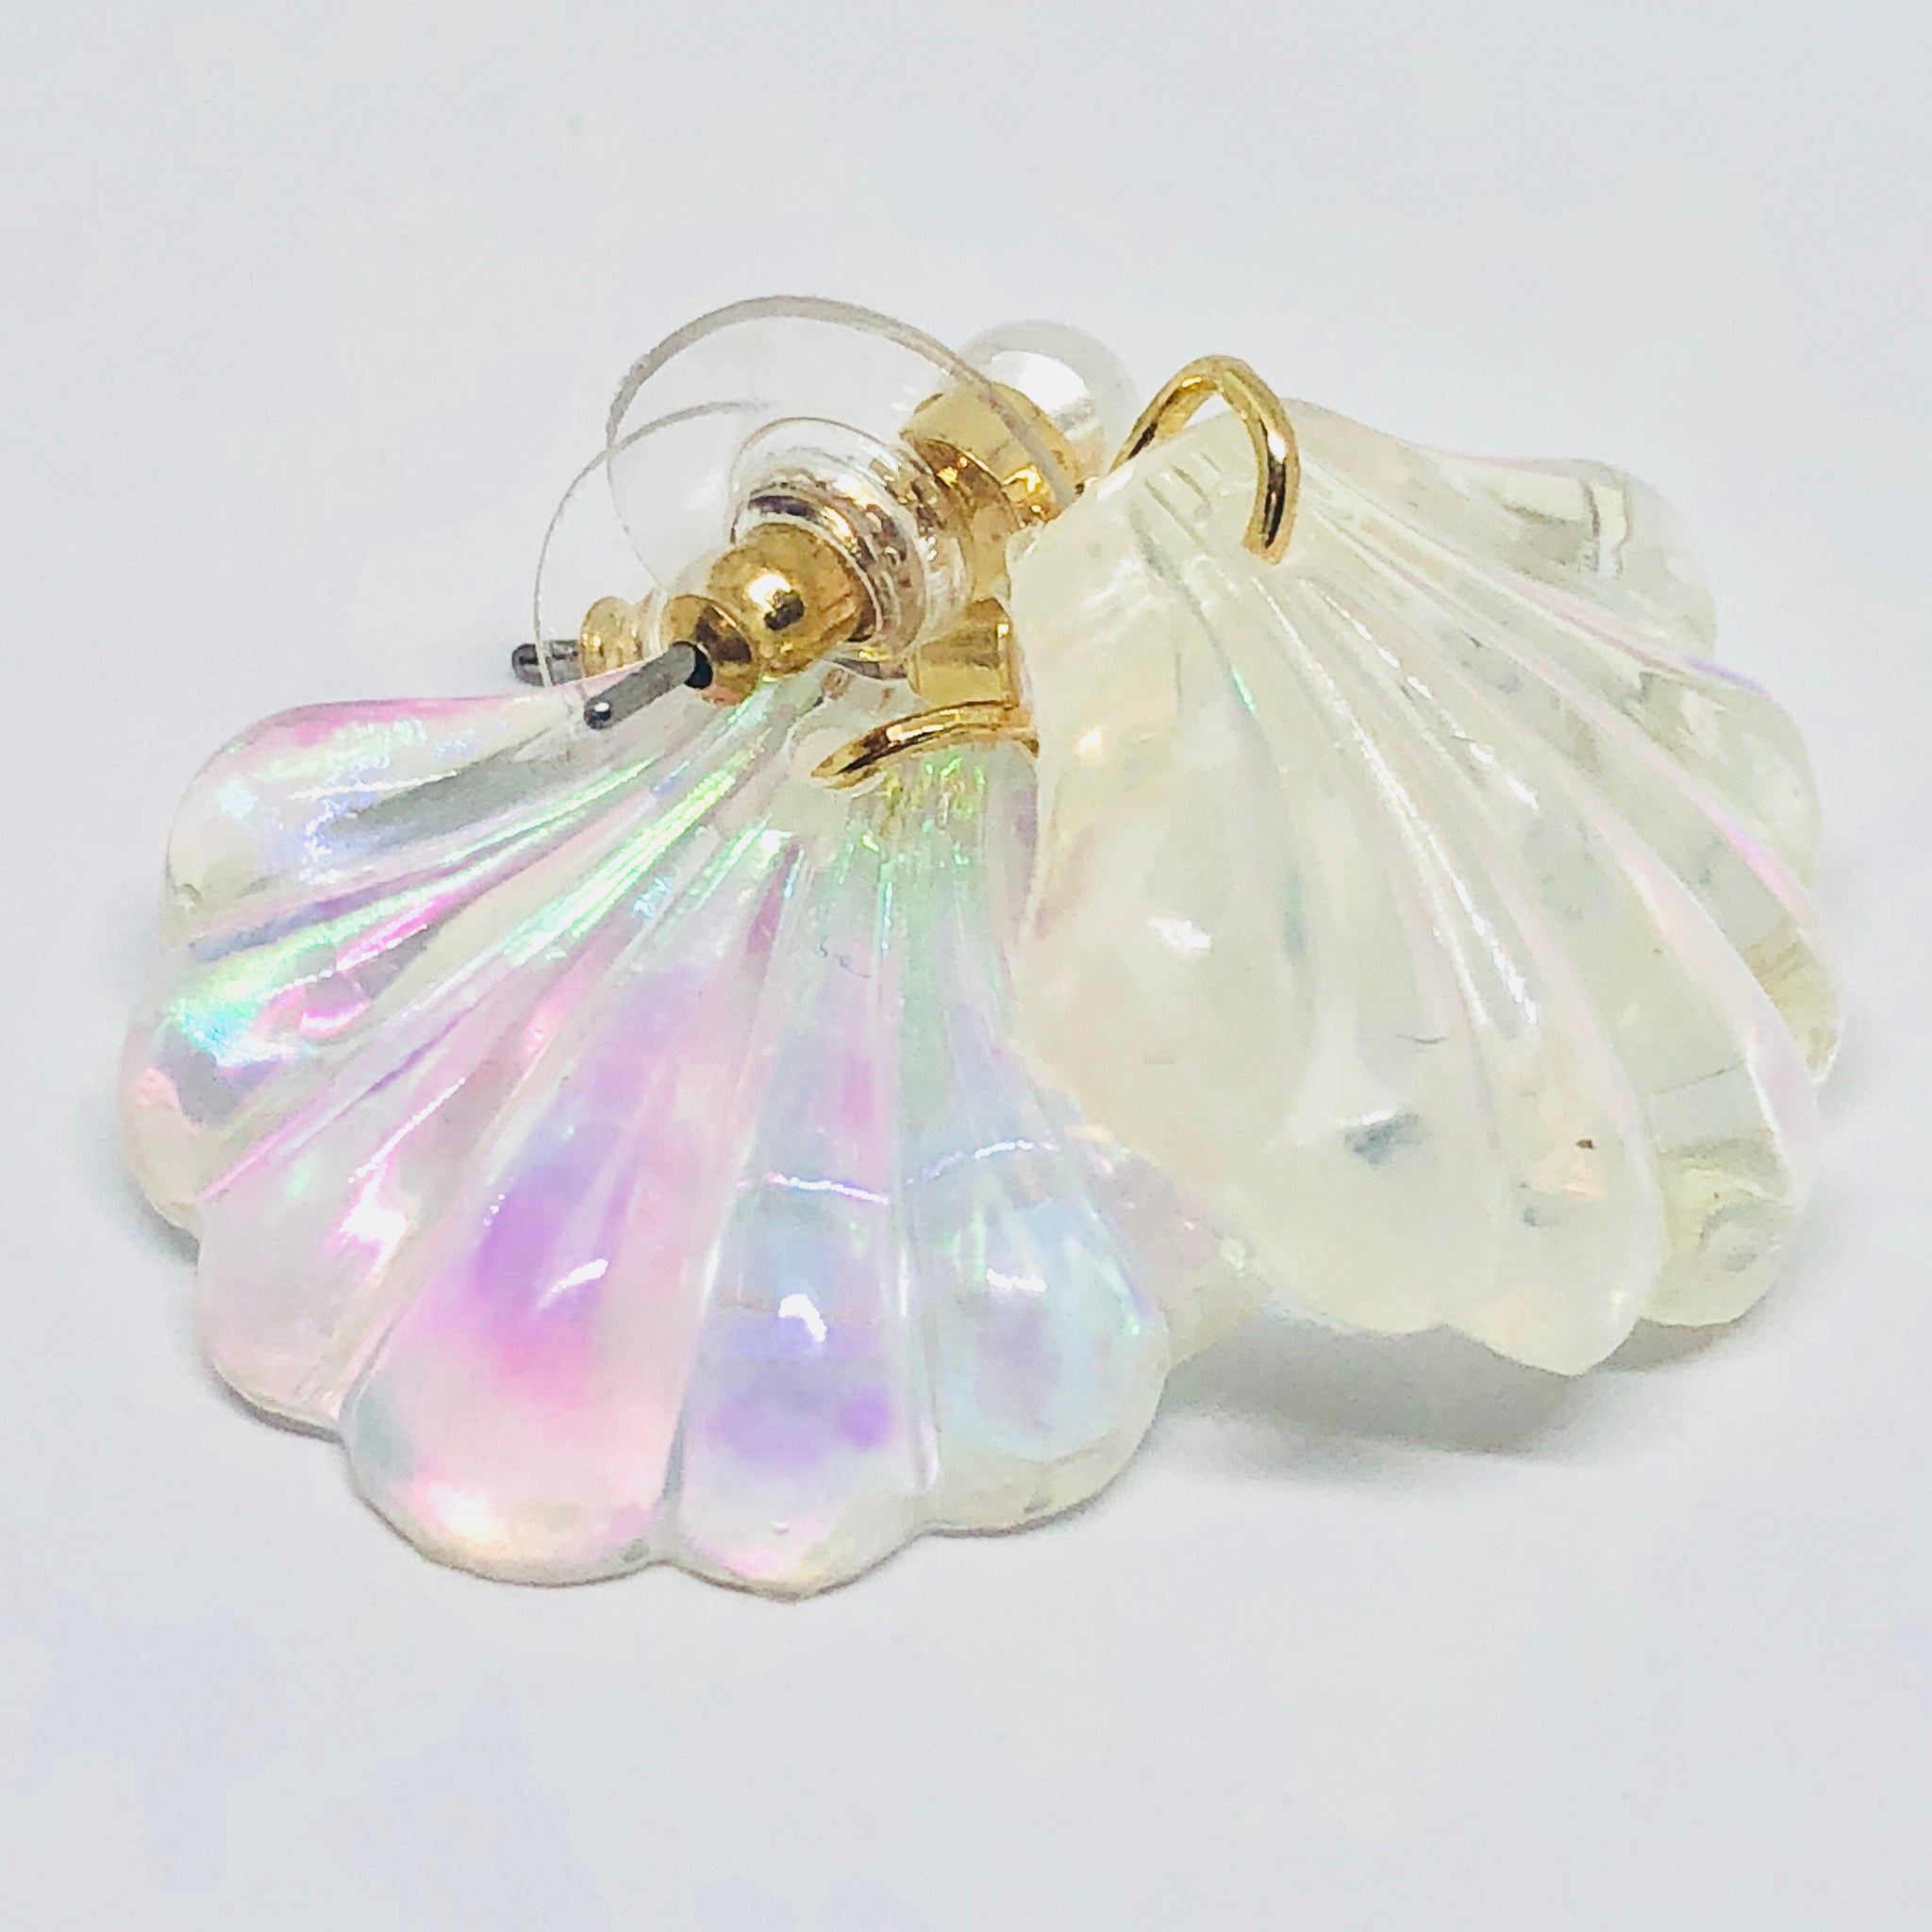 Marina - Iridescent Sea Shell Earrings